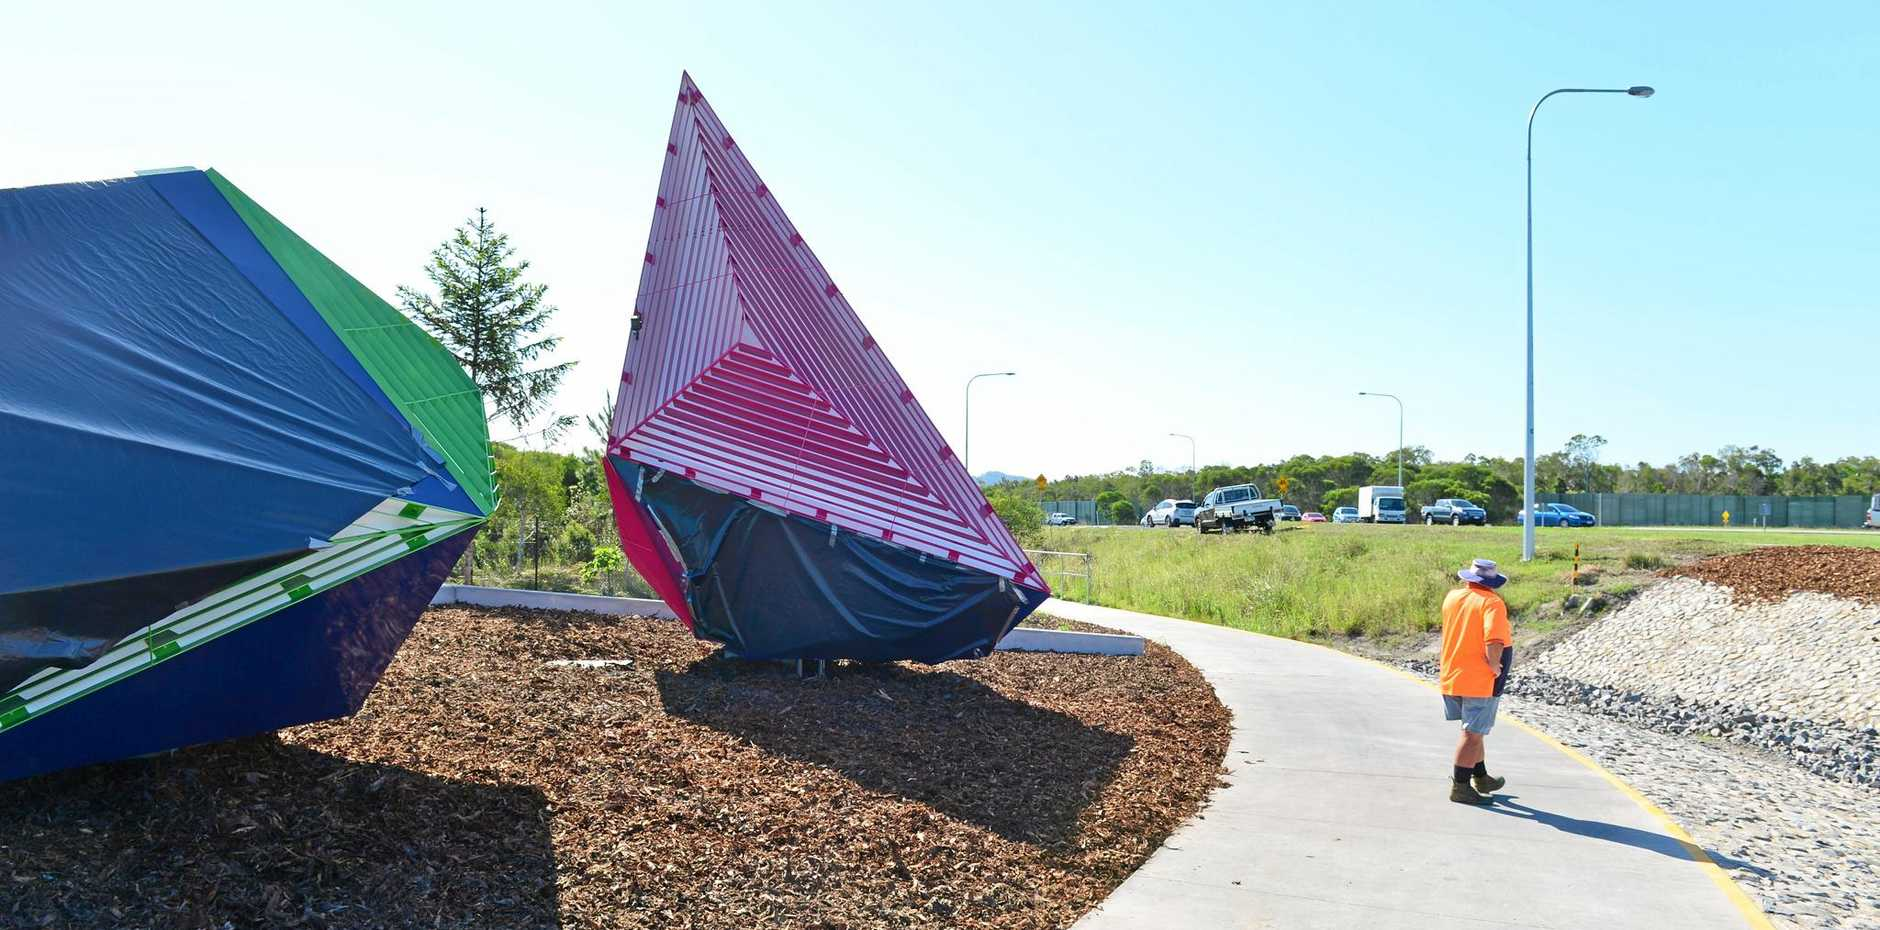 UNDER WRAPS: Graffiti on art installations at the entrance to the newly opened Bells Creek Arterial Road has been covered up.